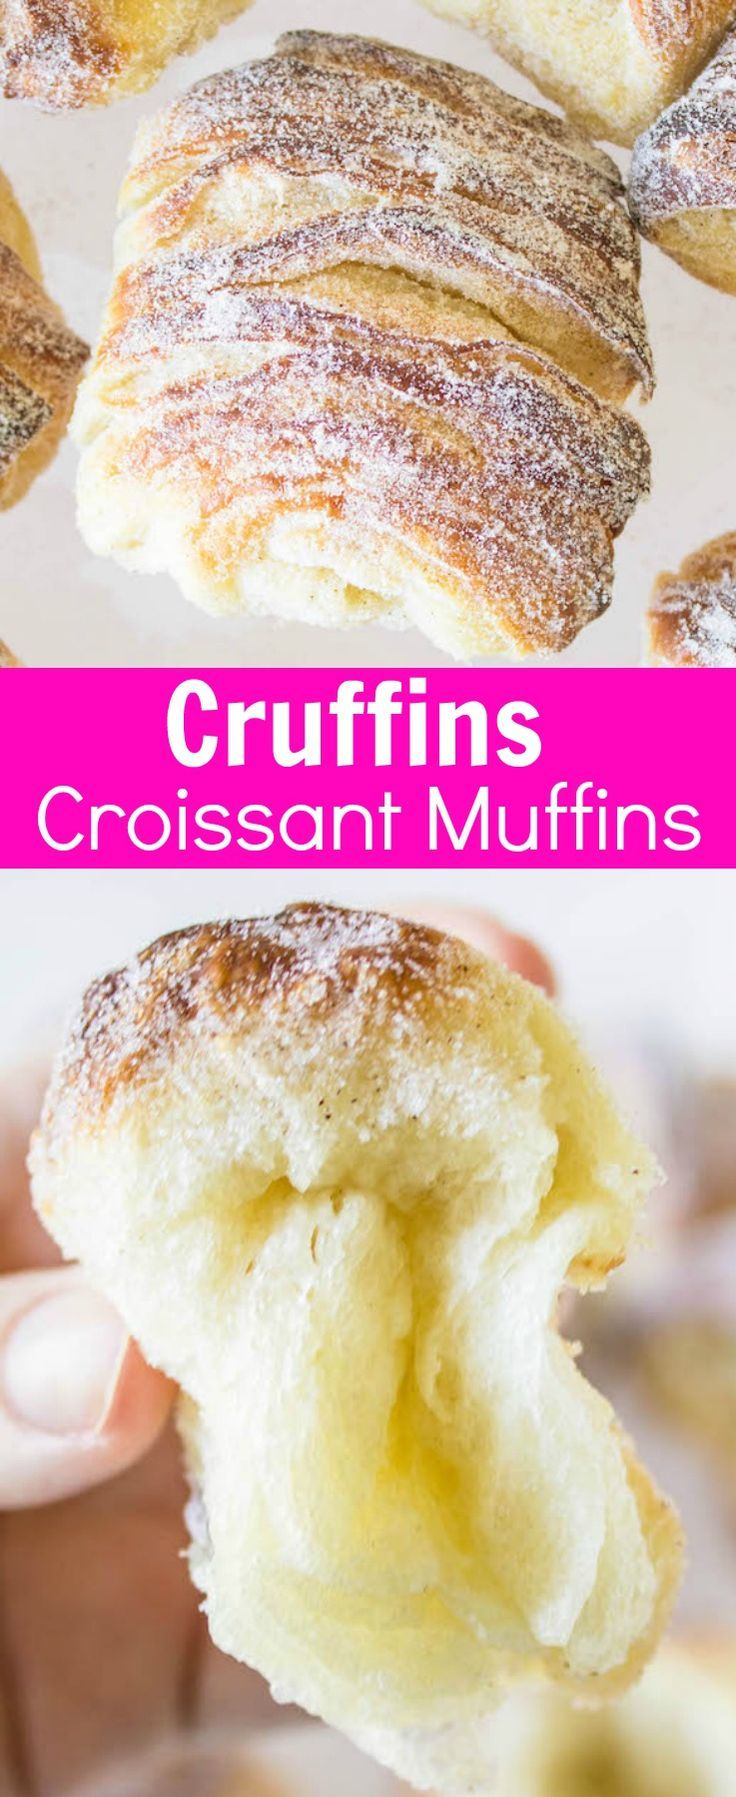 Cruffins: croissant muffins with pillow-y, buttery interiors and crisp, sugar-sprinkled exterior! Recipe via MonPetitFour.com